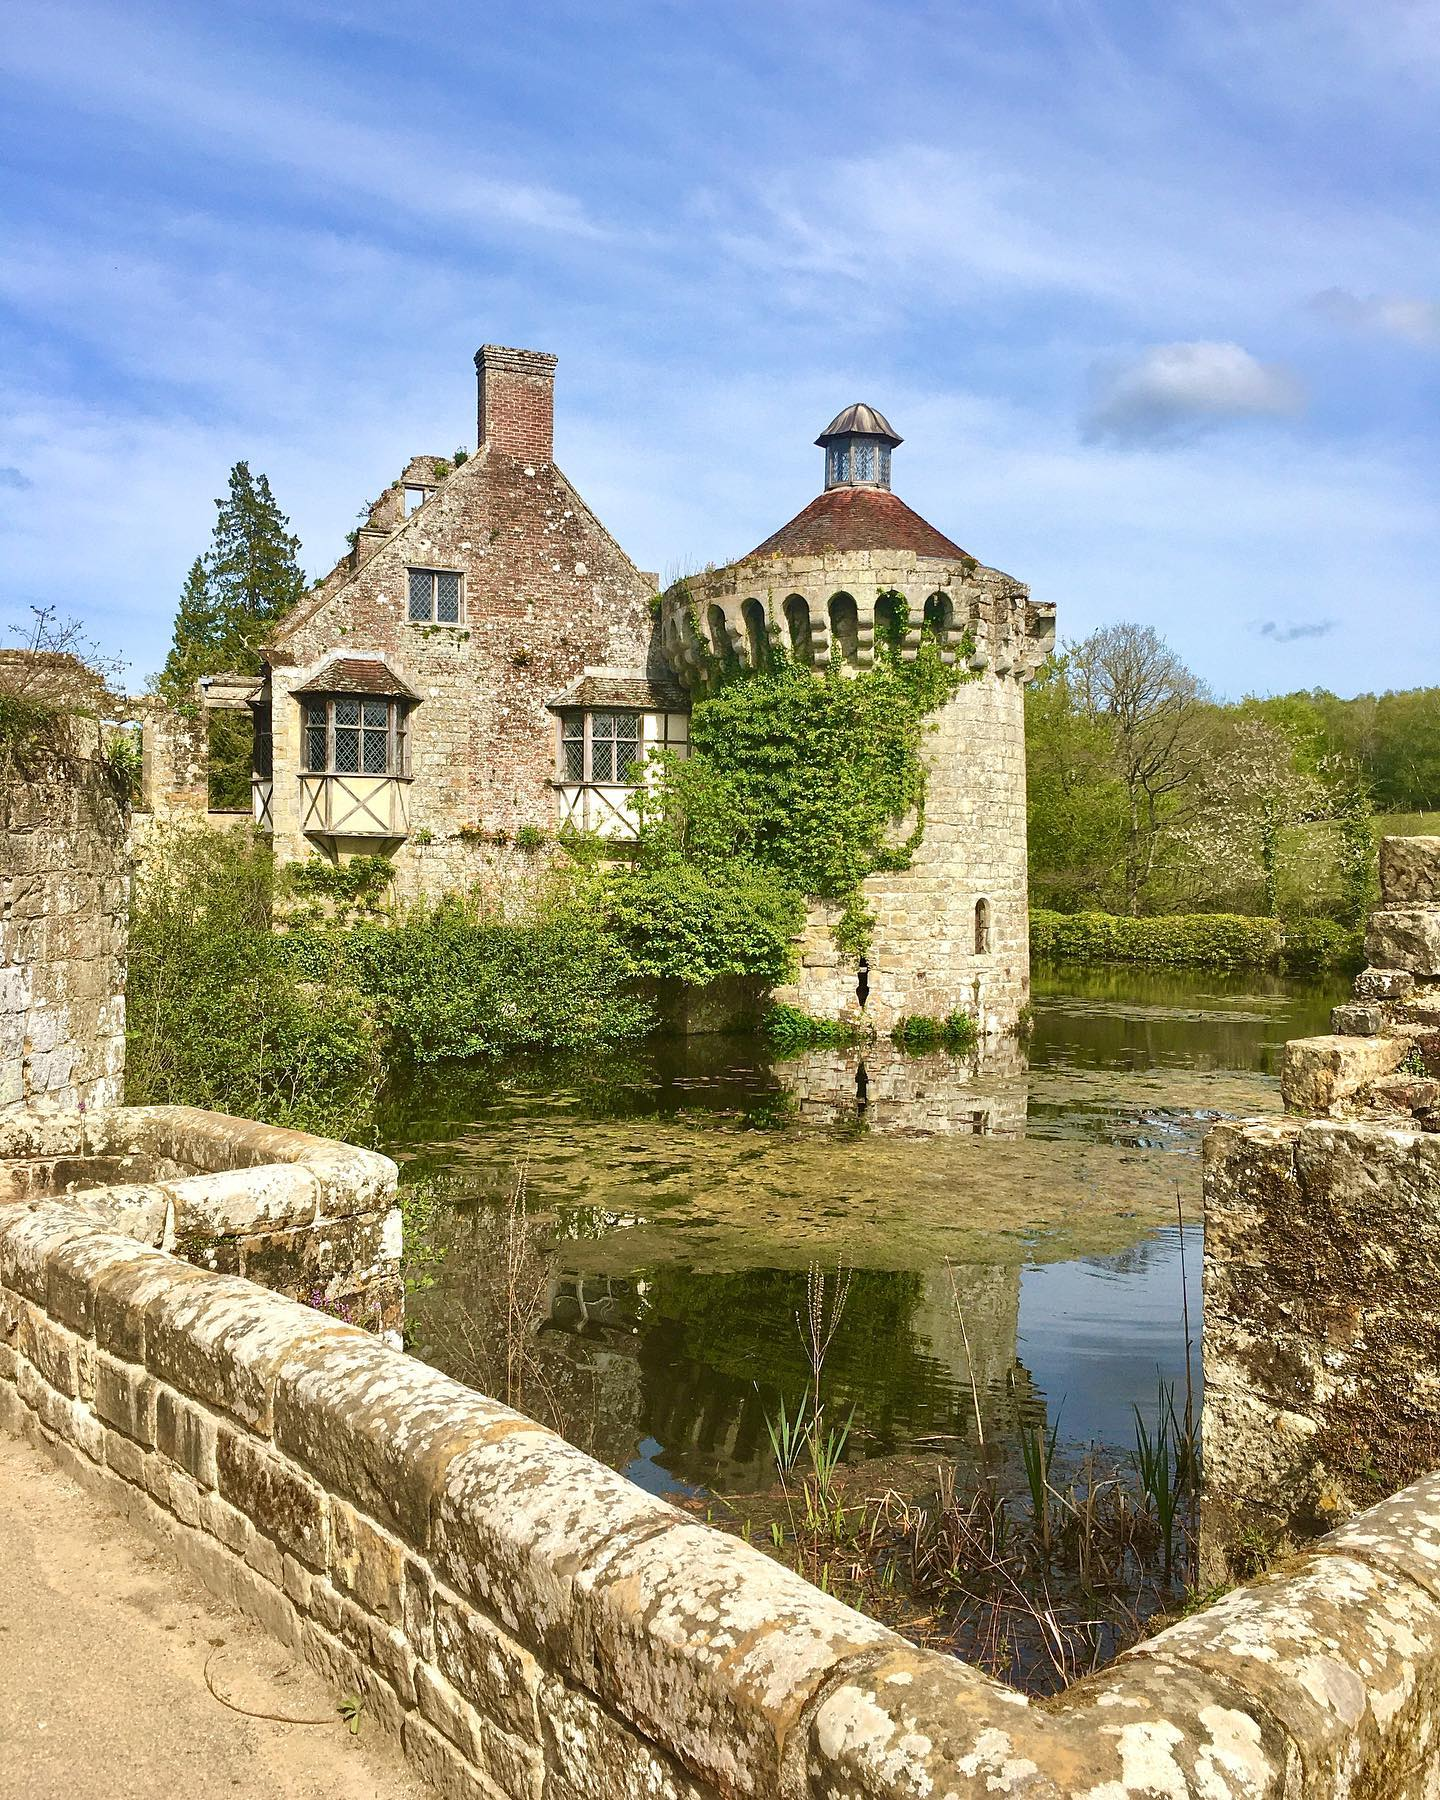 Moated fairytale castles can't help but capture the imagination...  #castle #ruins #history #architecture #spring #medieval #photography #bluesky #beautiful #travel #travelphotography #tourism #england